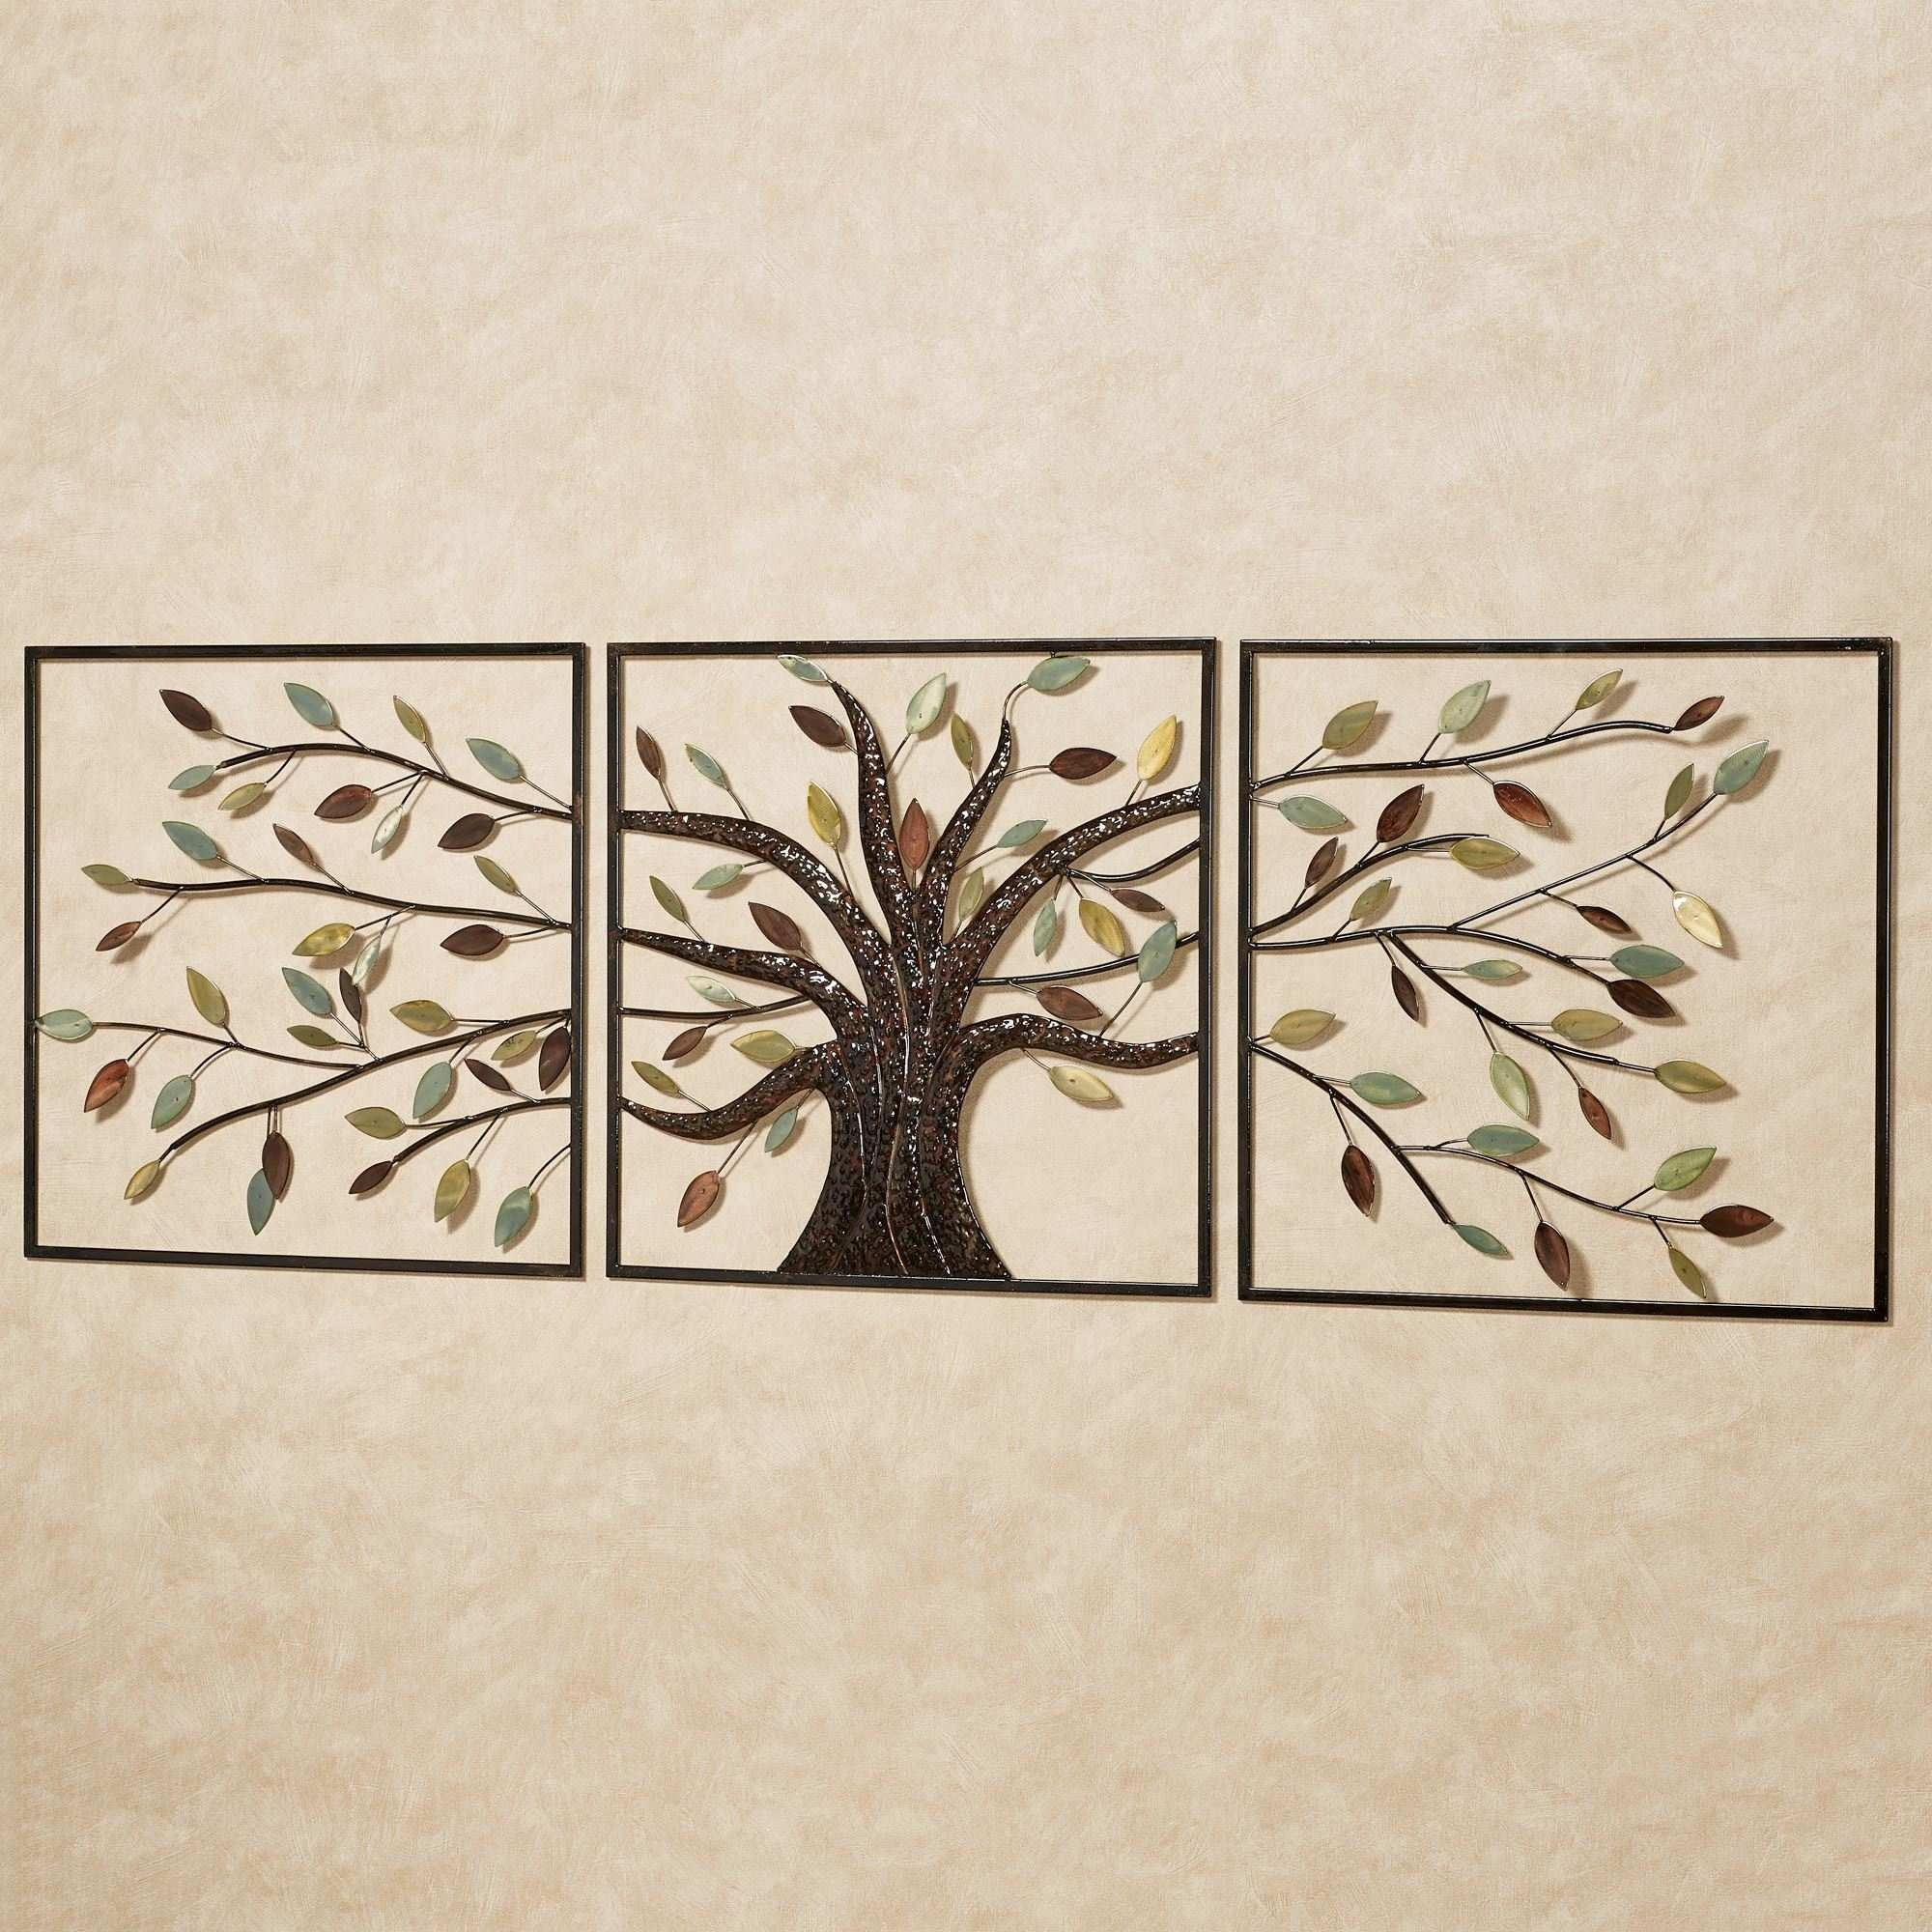 Metal Tree Wall Art Luxury Ever Changing Brown Tree Metal Wall Art regarding Metal Tree Wall Art (Image 10 of 21)